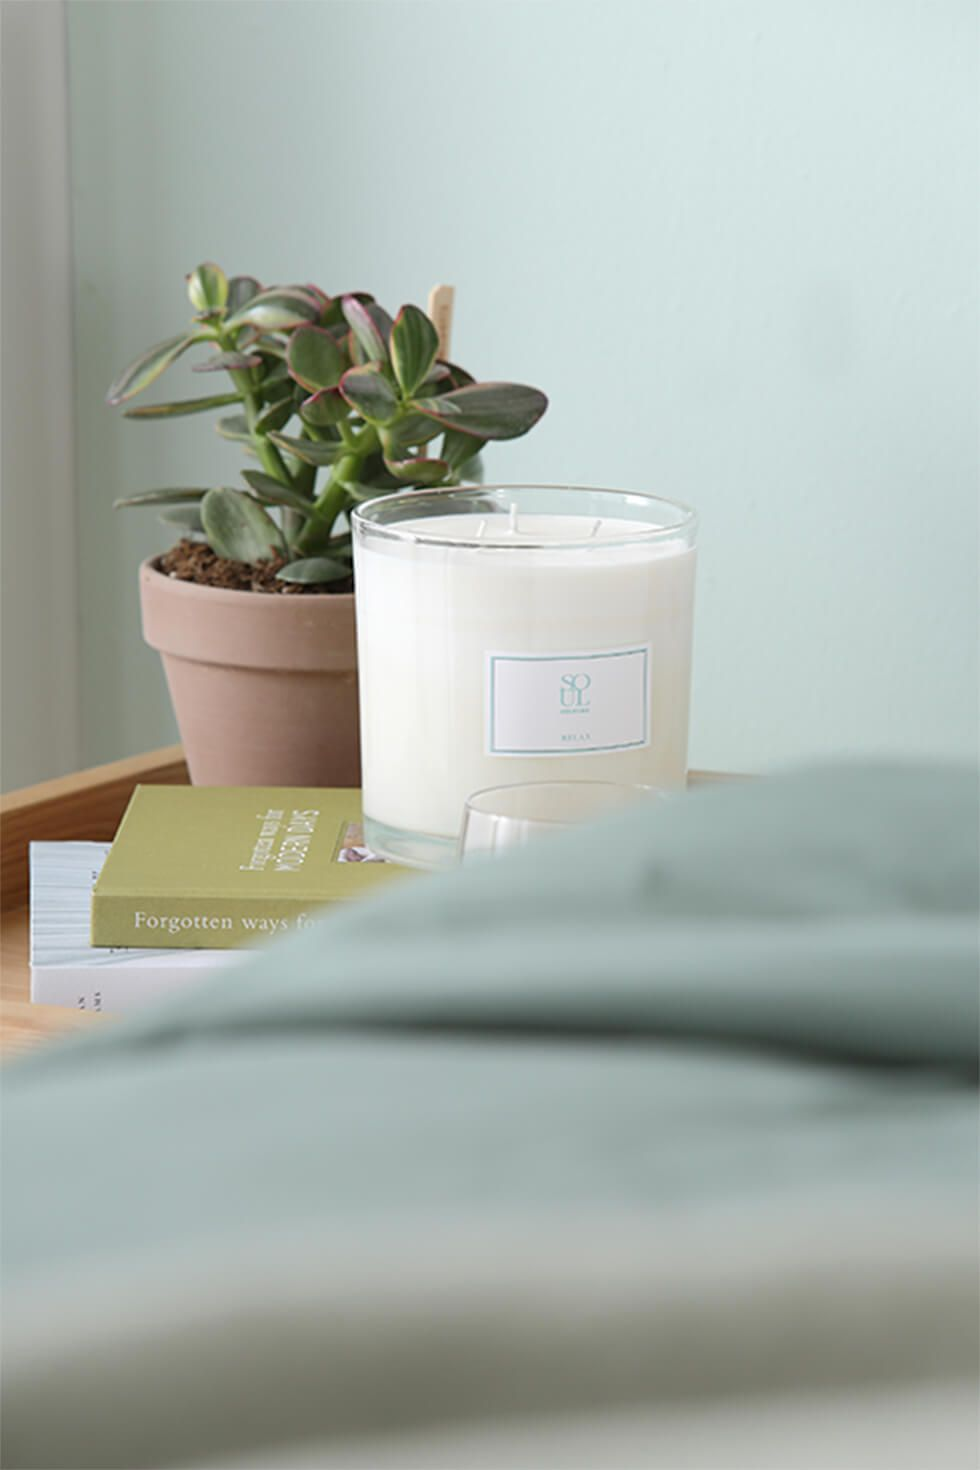 Bedside table with a potted plant and scented candle for a calming ambience